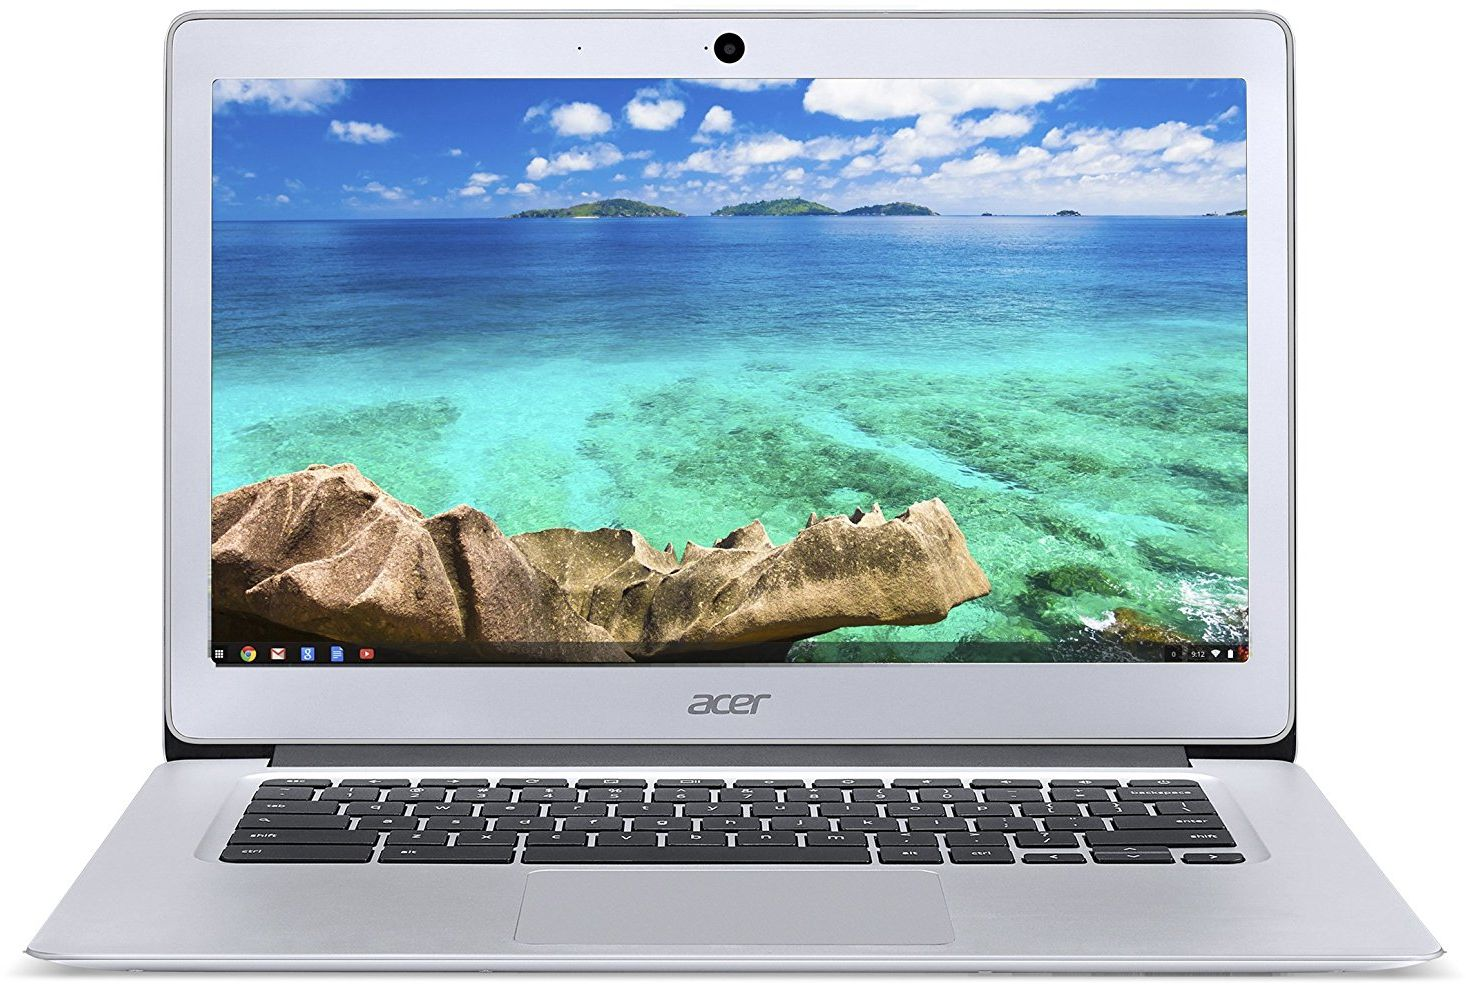 Acer Chromebook CB3-431 14-inch laptop